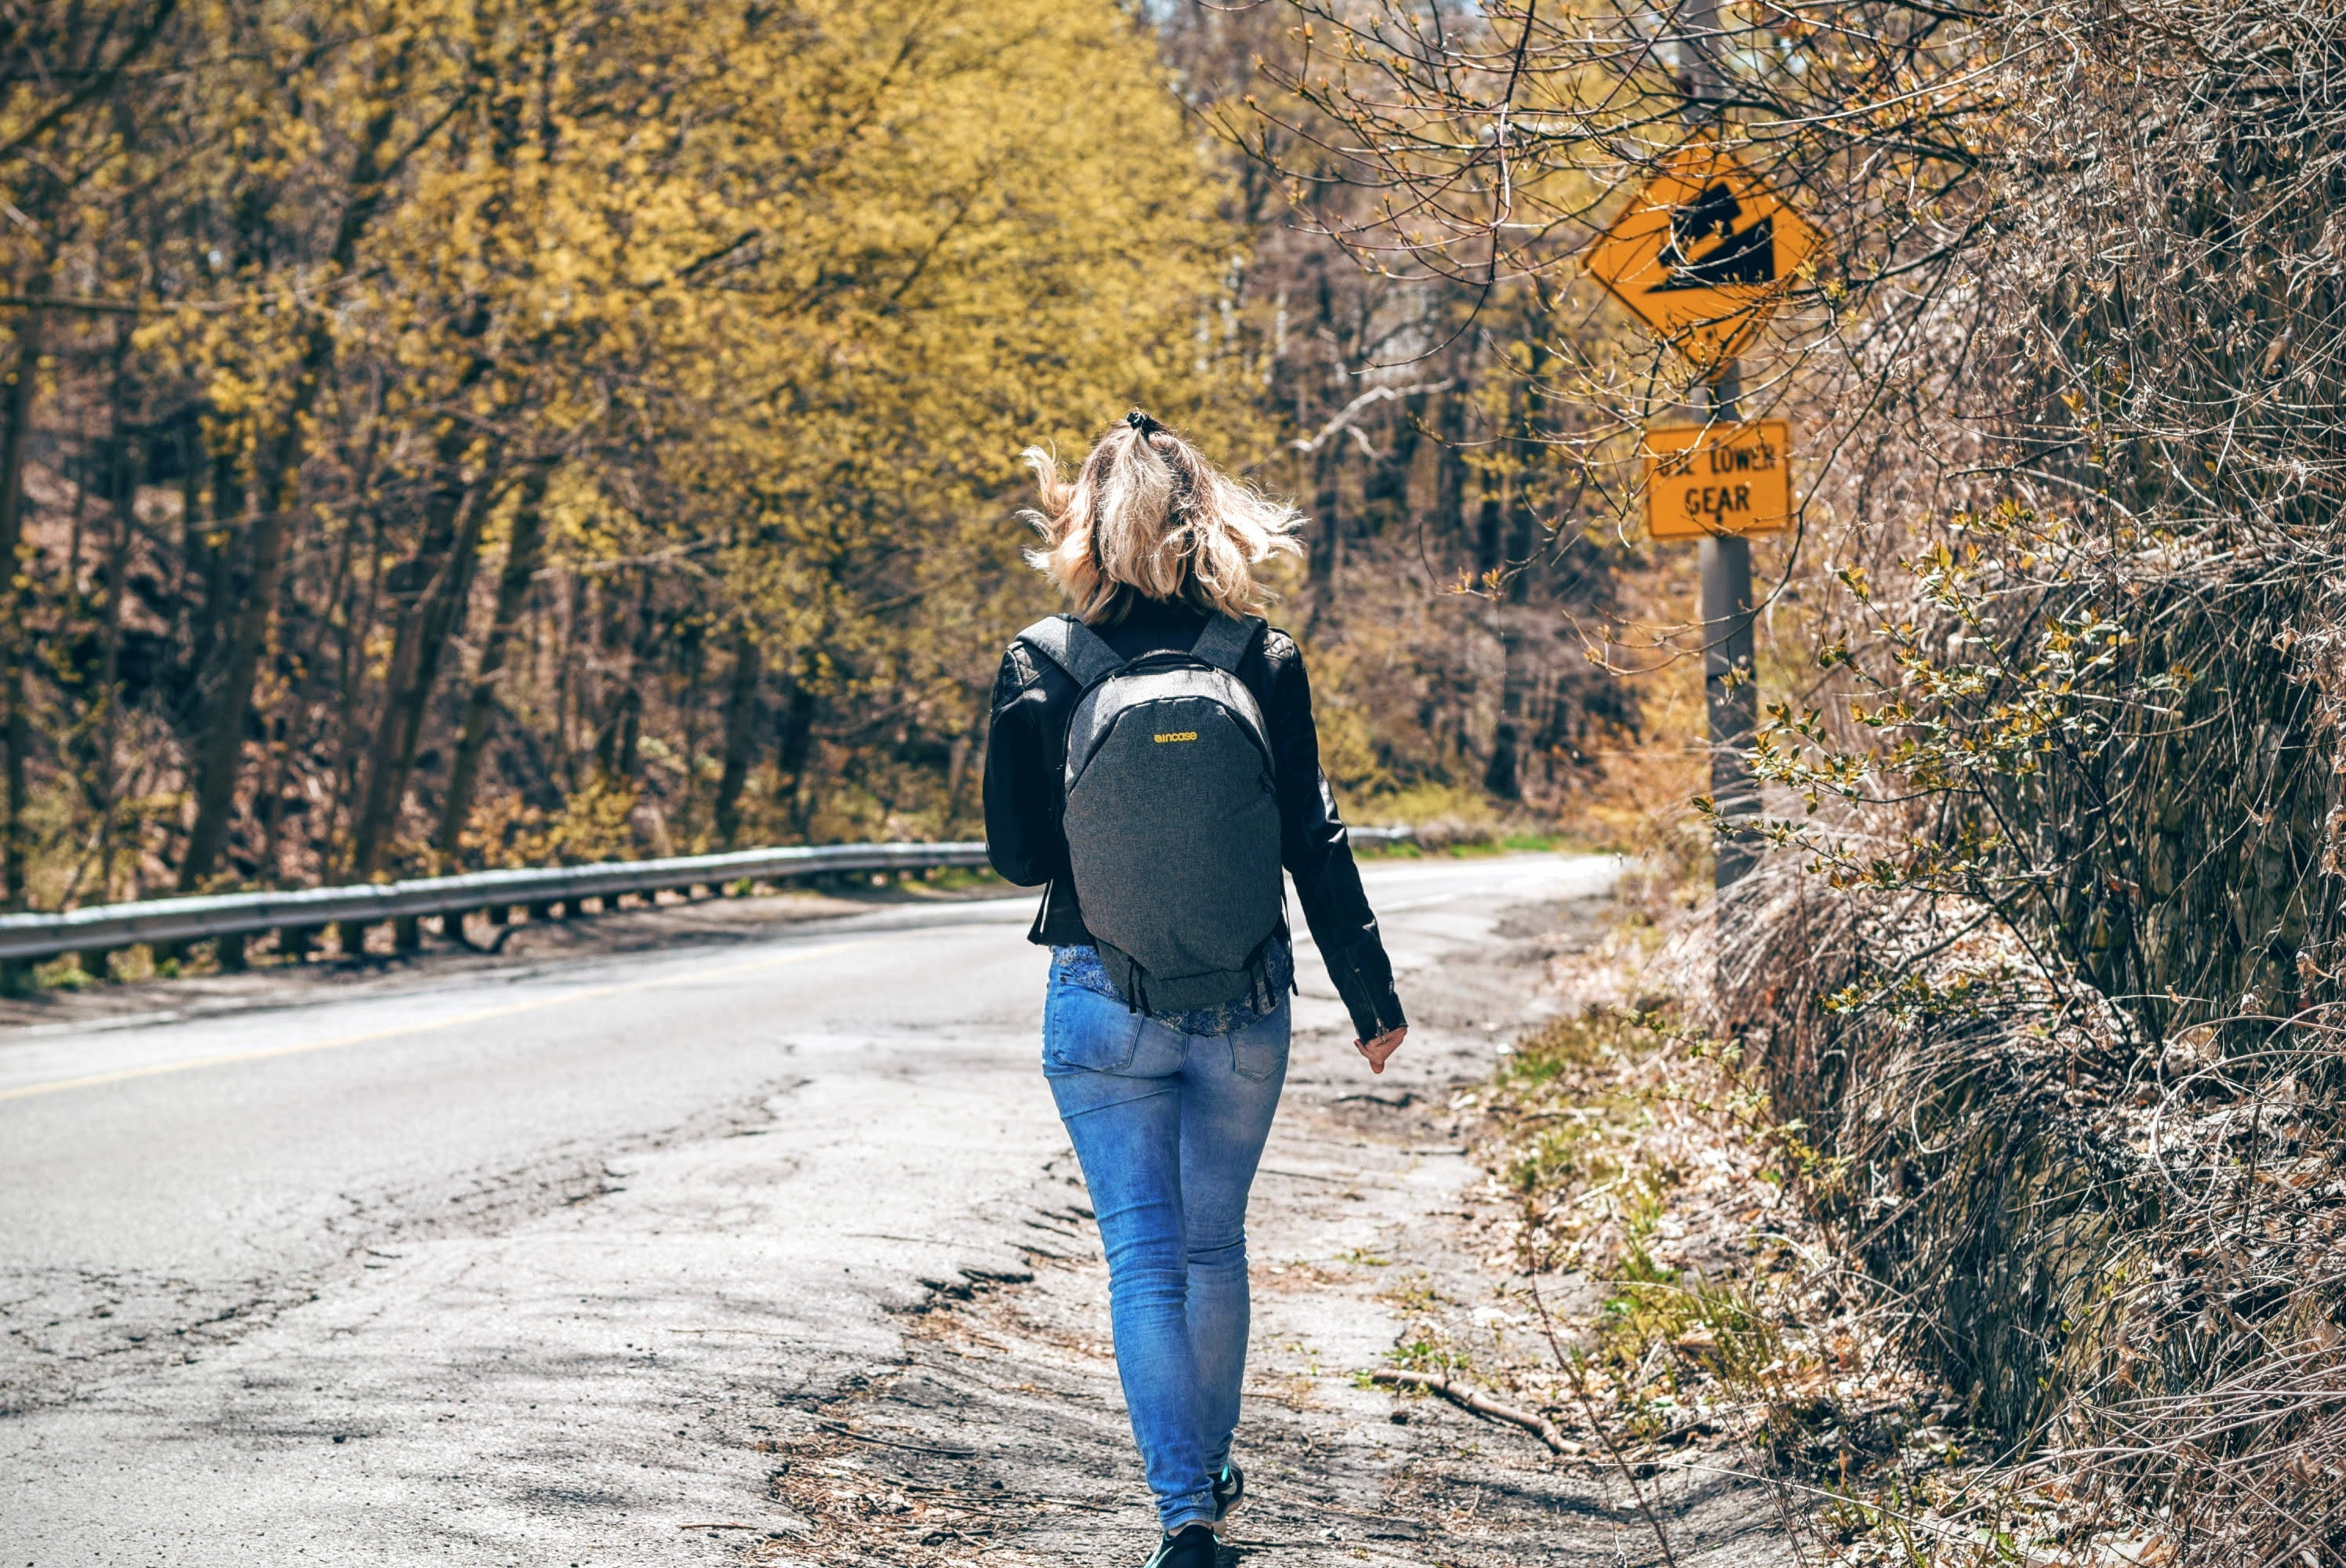 Woman in Blue Denim Fitted Jeans and Wearing Grey Backpack Walking on Gray Asphalt Road Near Road Signage and Trees at Daytime